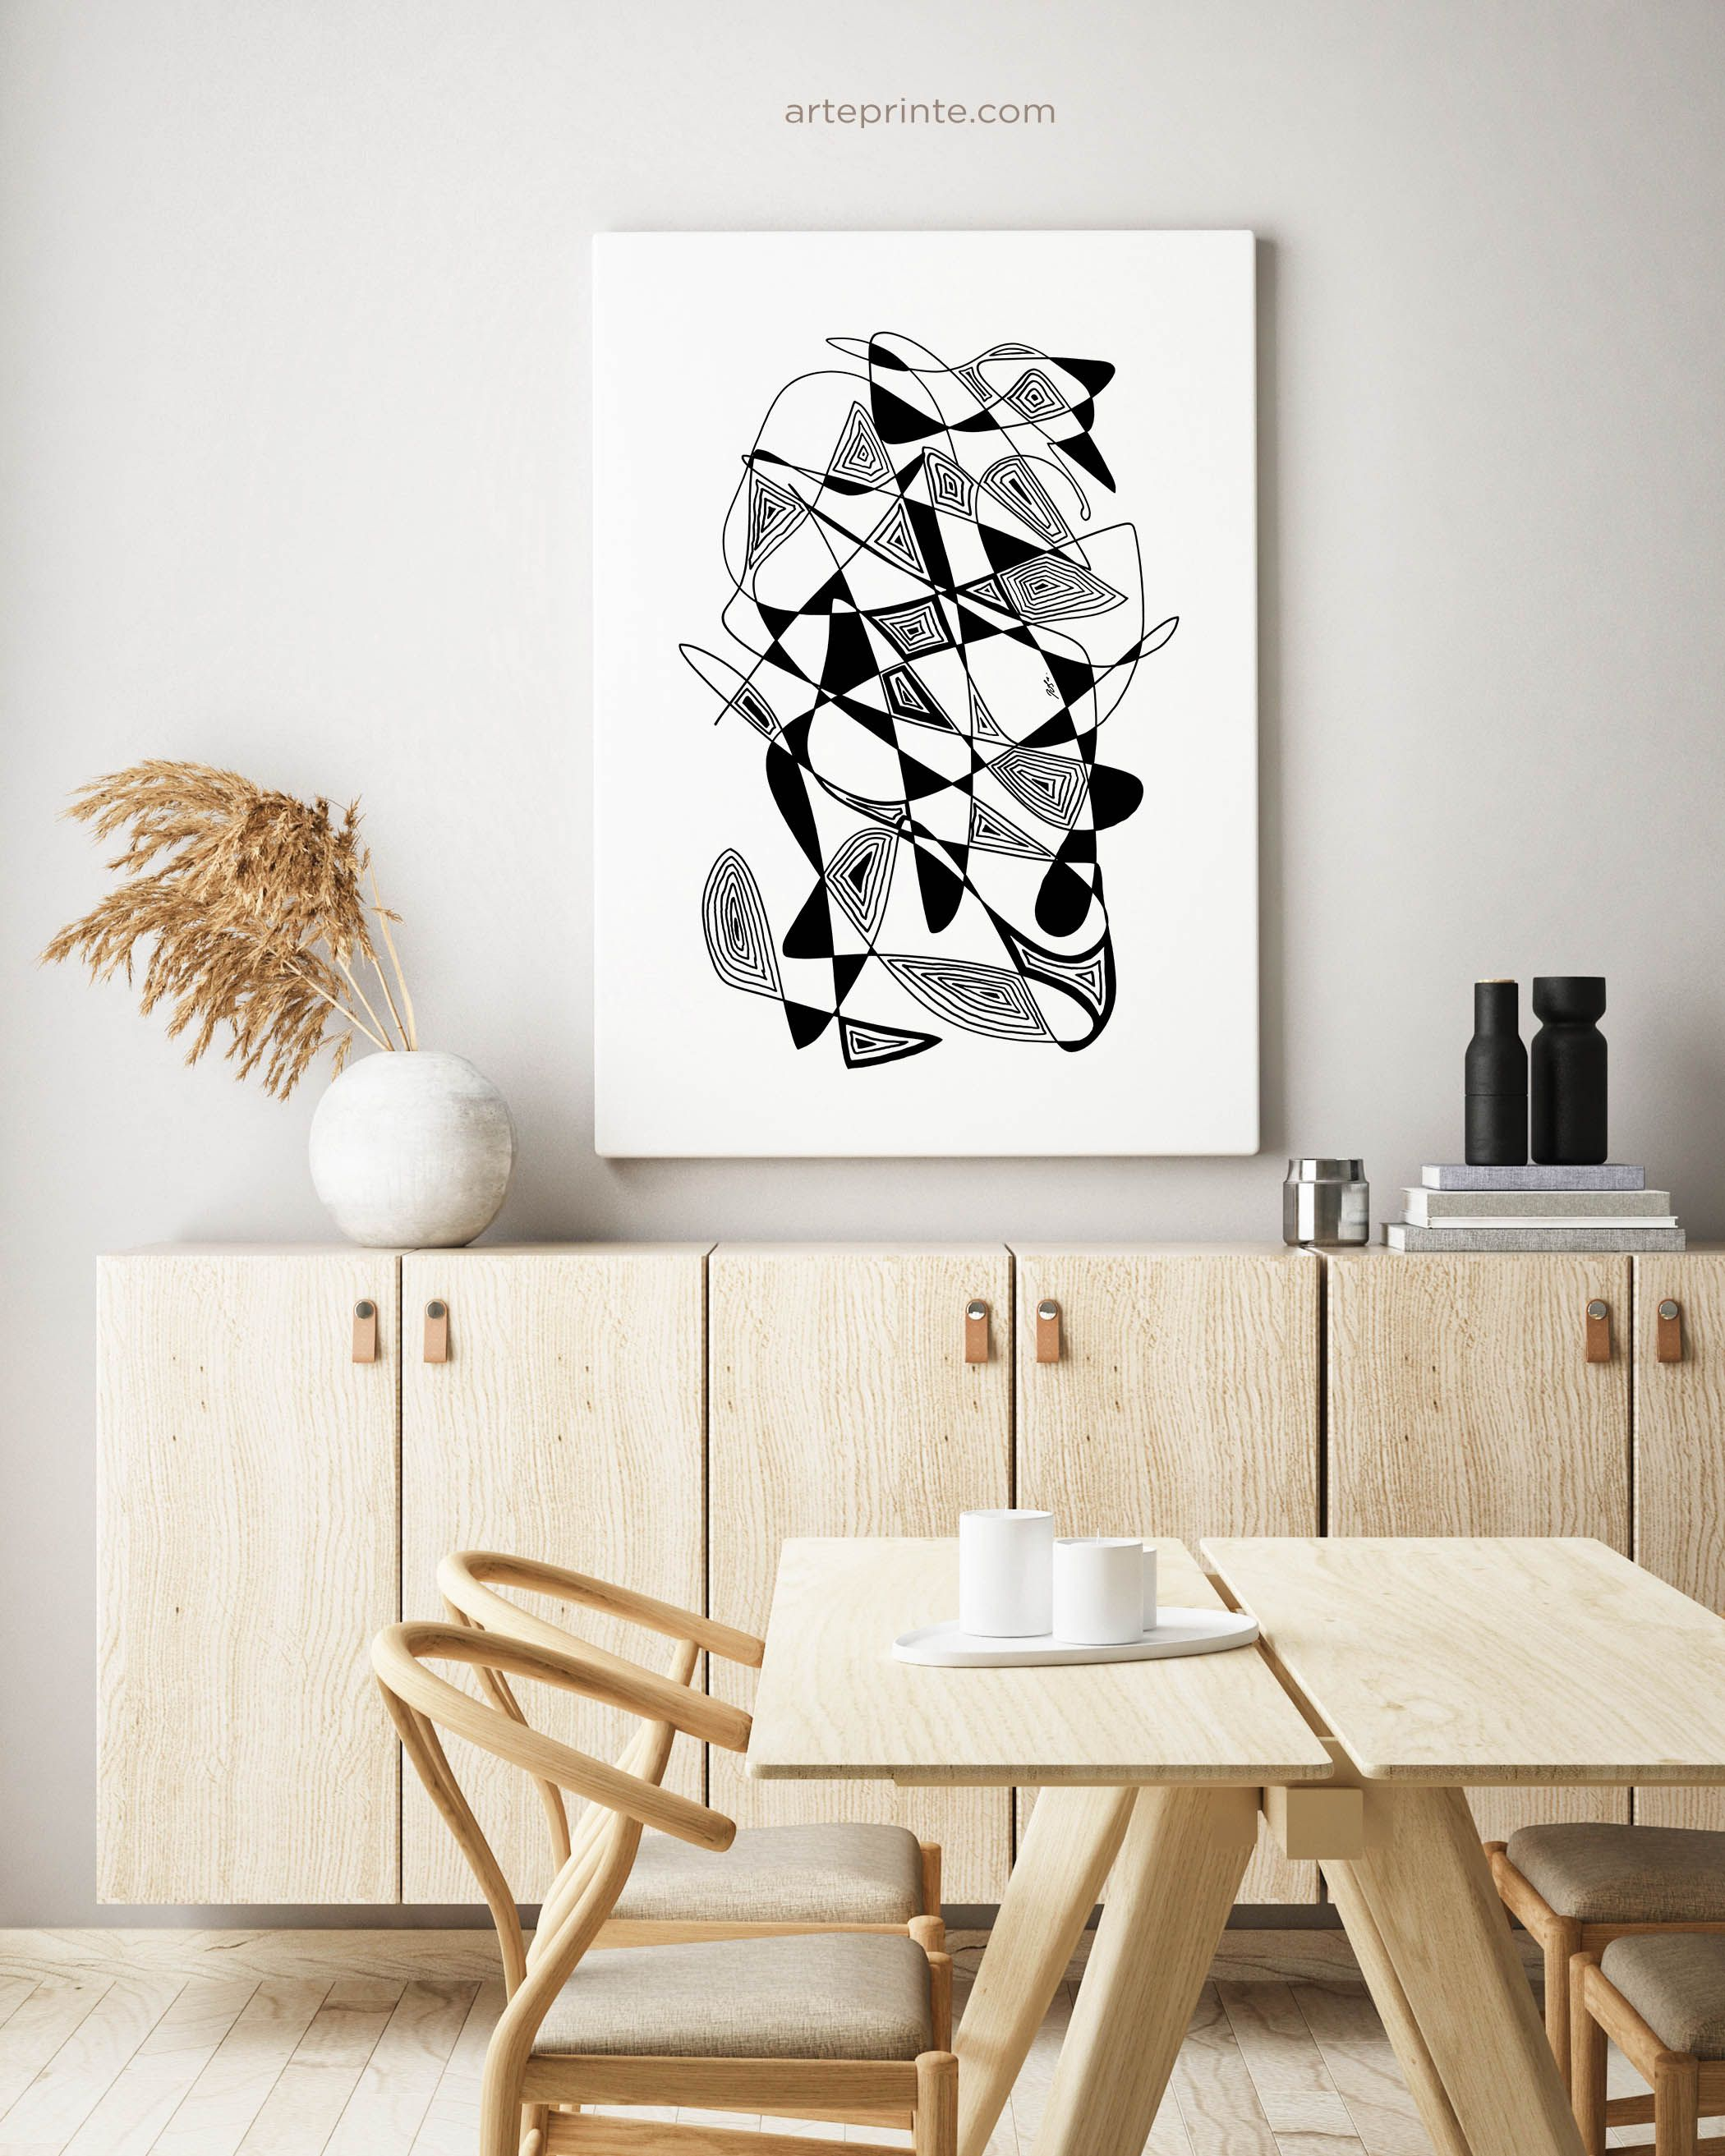 Abstract Art Diy Print Abstract Lines Abstract Shapes Modern Line Art Black And White Art Minimalist Scandi Wall Art Printable Files In 2020 Diy Prints White Art Abstract Lines